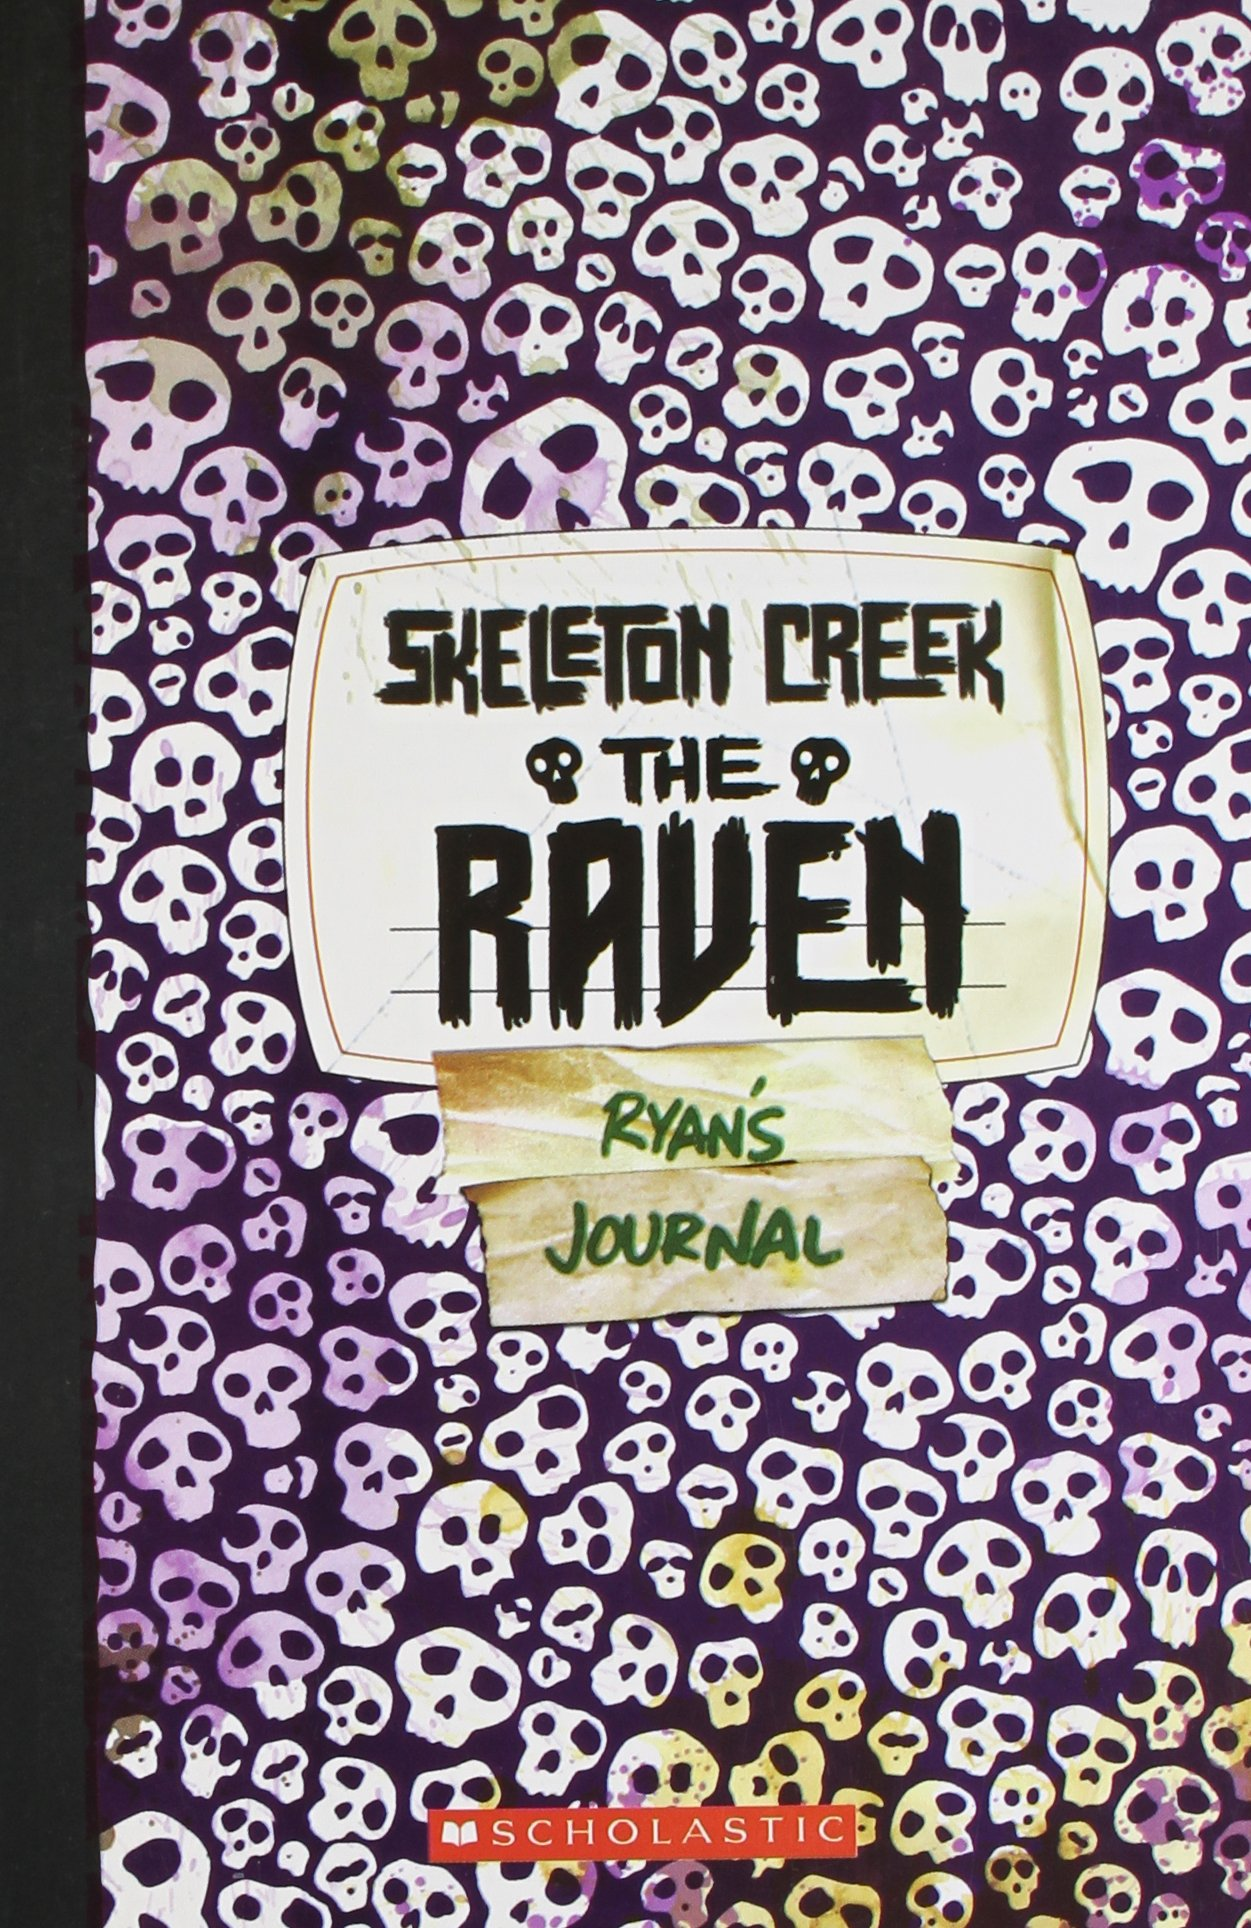 Buy The Raven Ryans Journal (Skeleton Creek #04) Book Online at Low Prices  in India | The Raven Ryans Journal (Skeleton Creek #04) Reviews & Ratings  ...